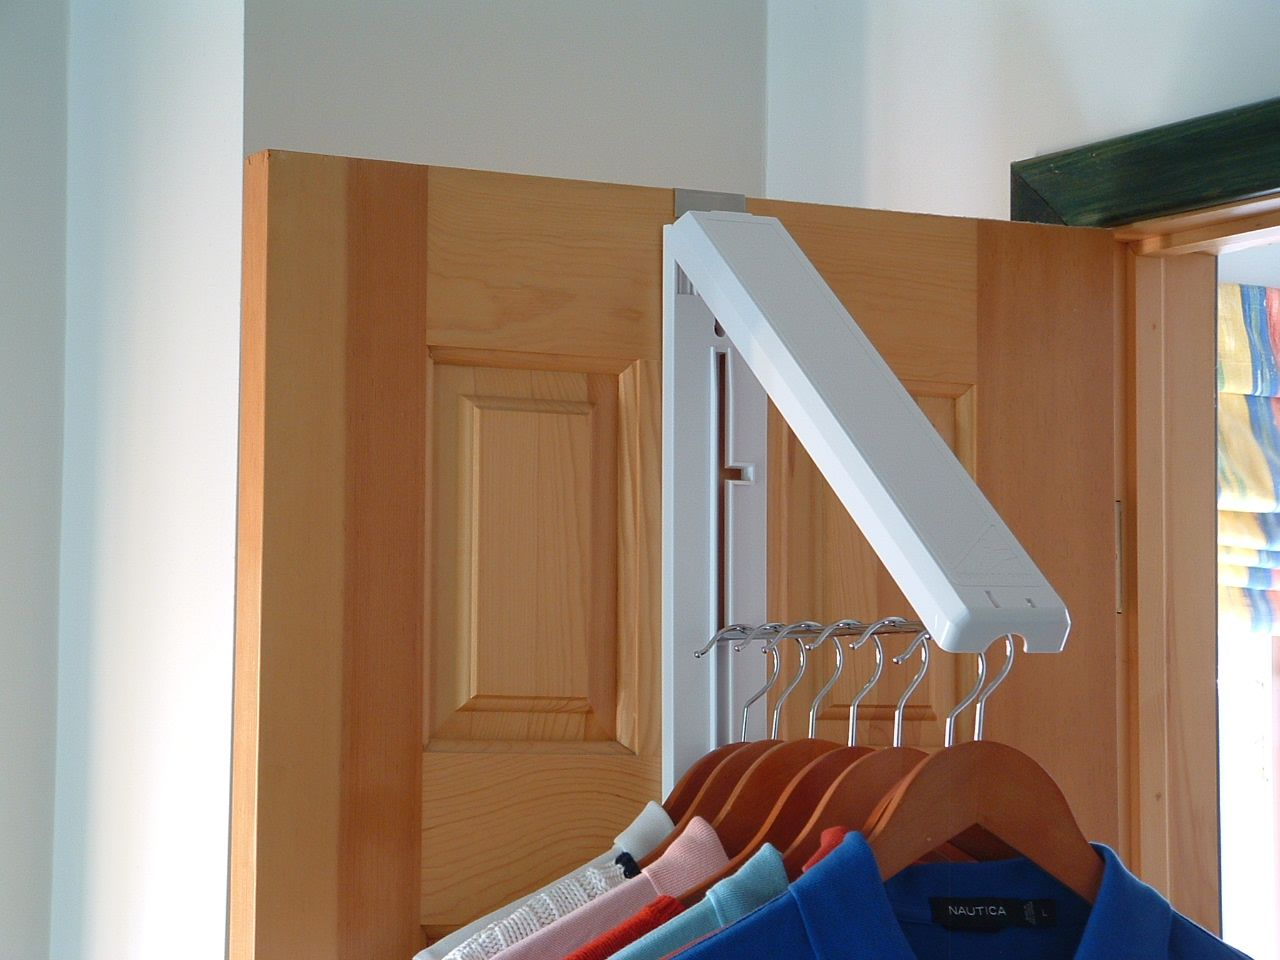 Instahanger Fold Away Clothes Dryer Urban Clotheslines